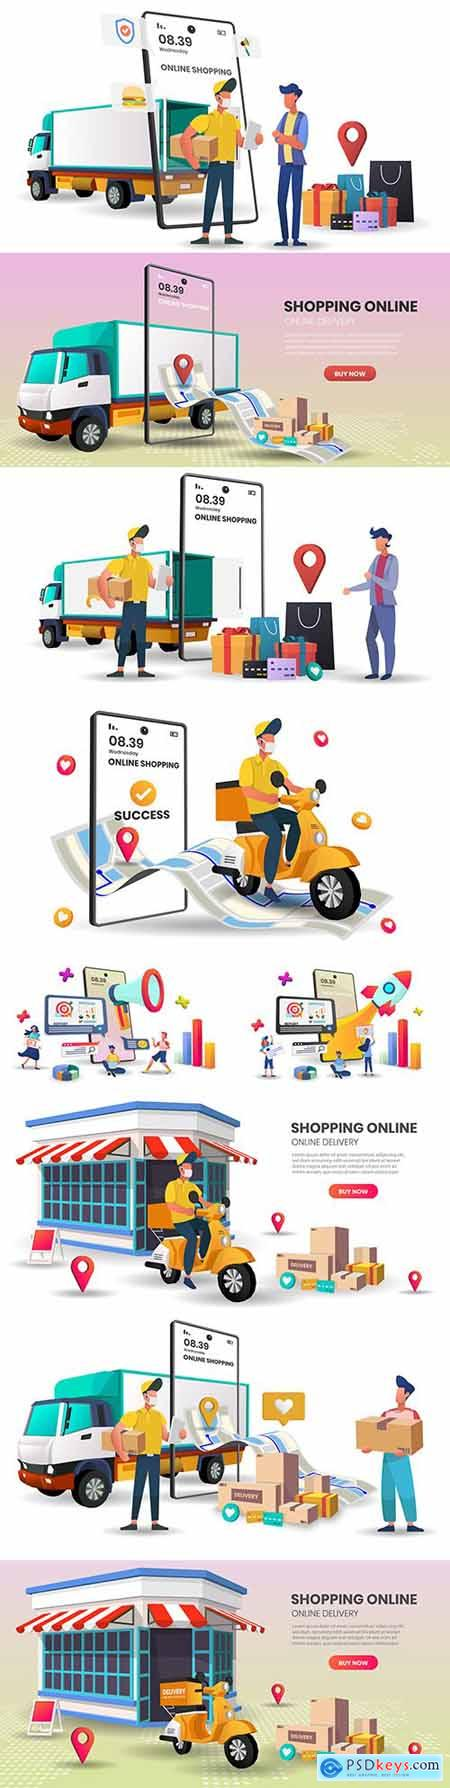 Shopping online on mobile app with truck concept digital